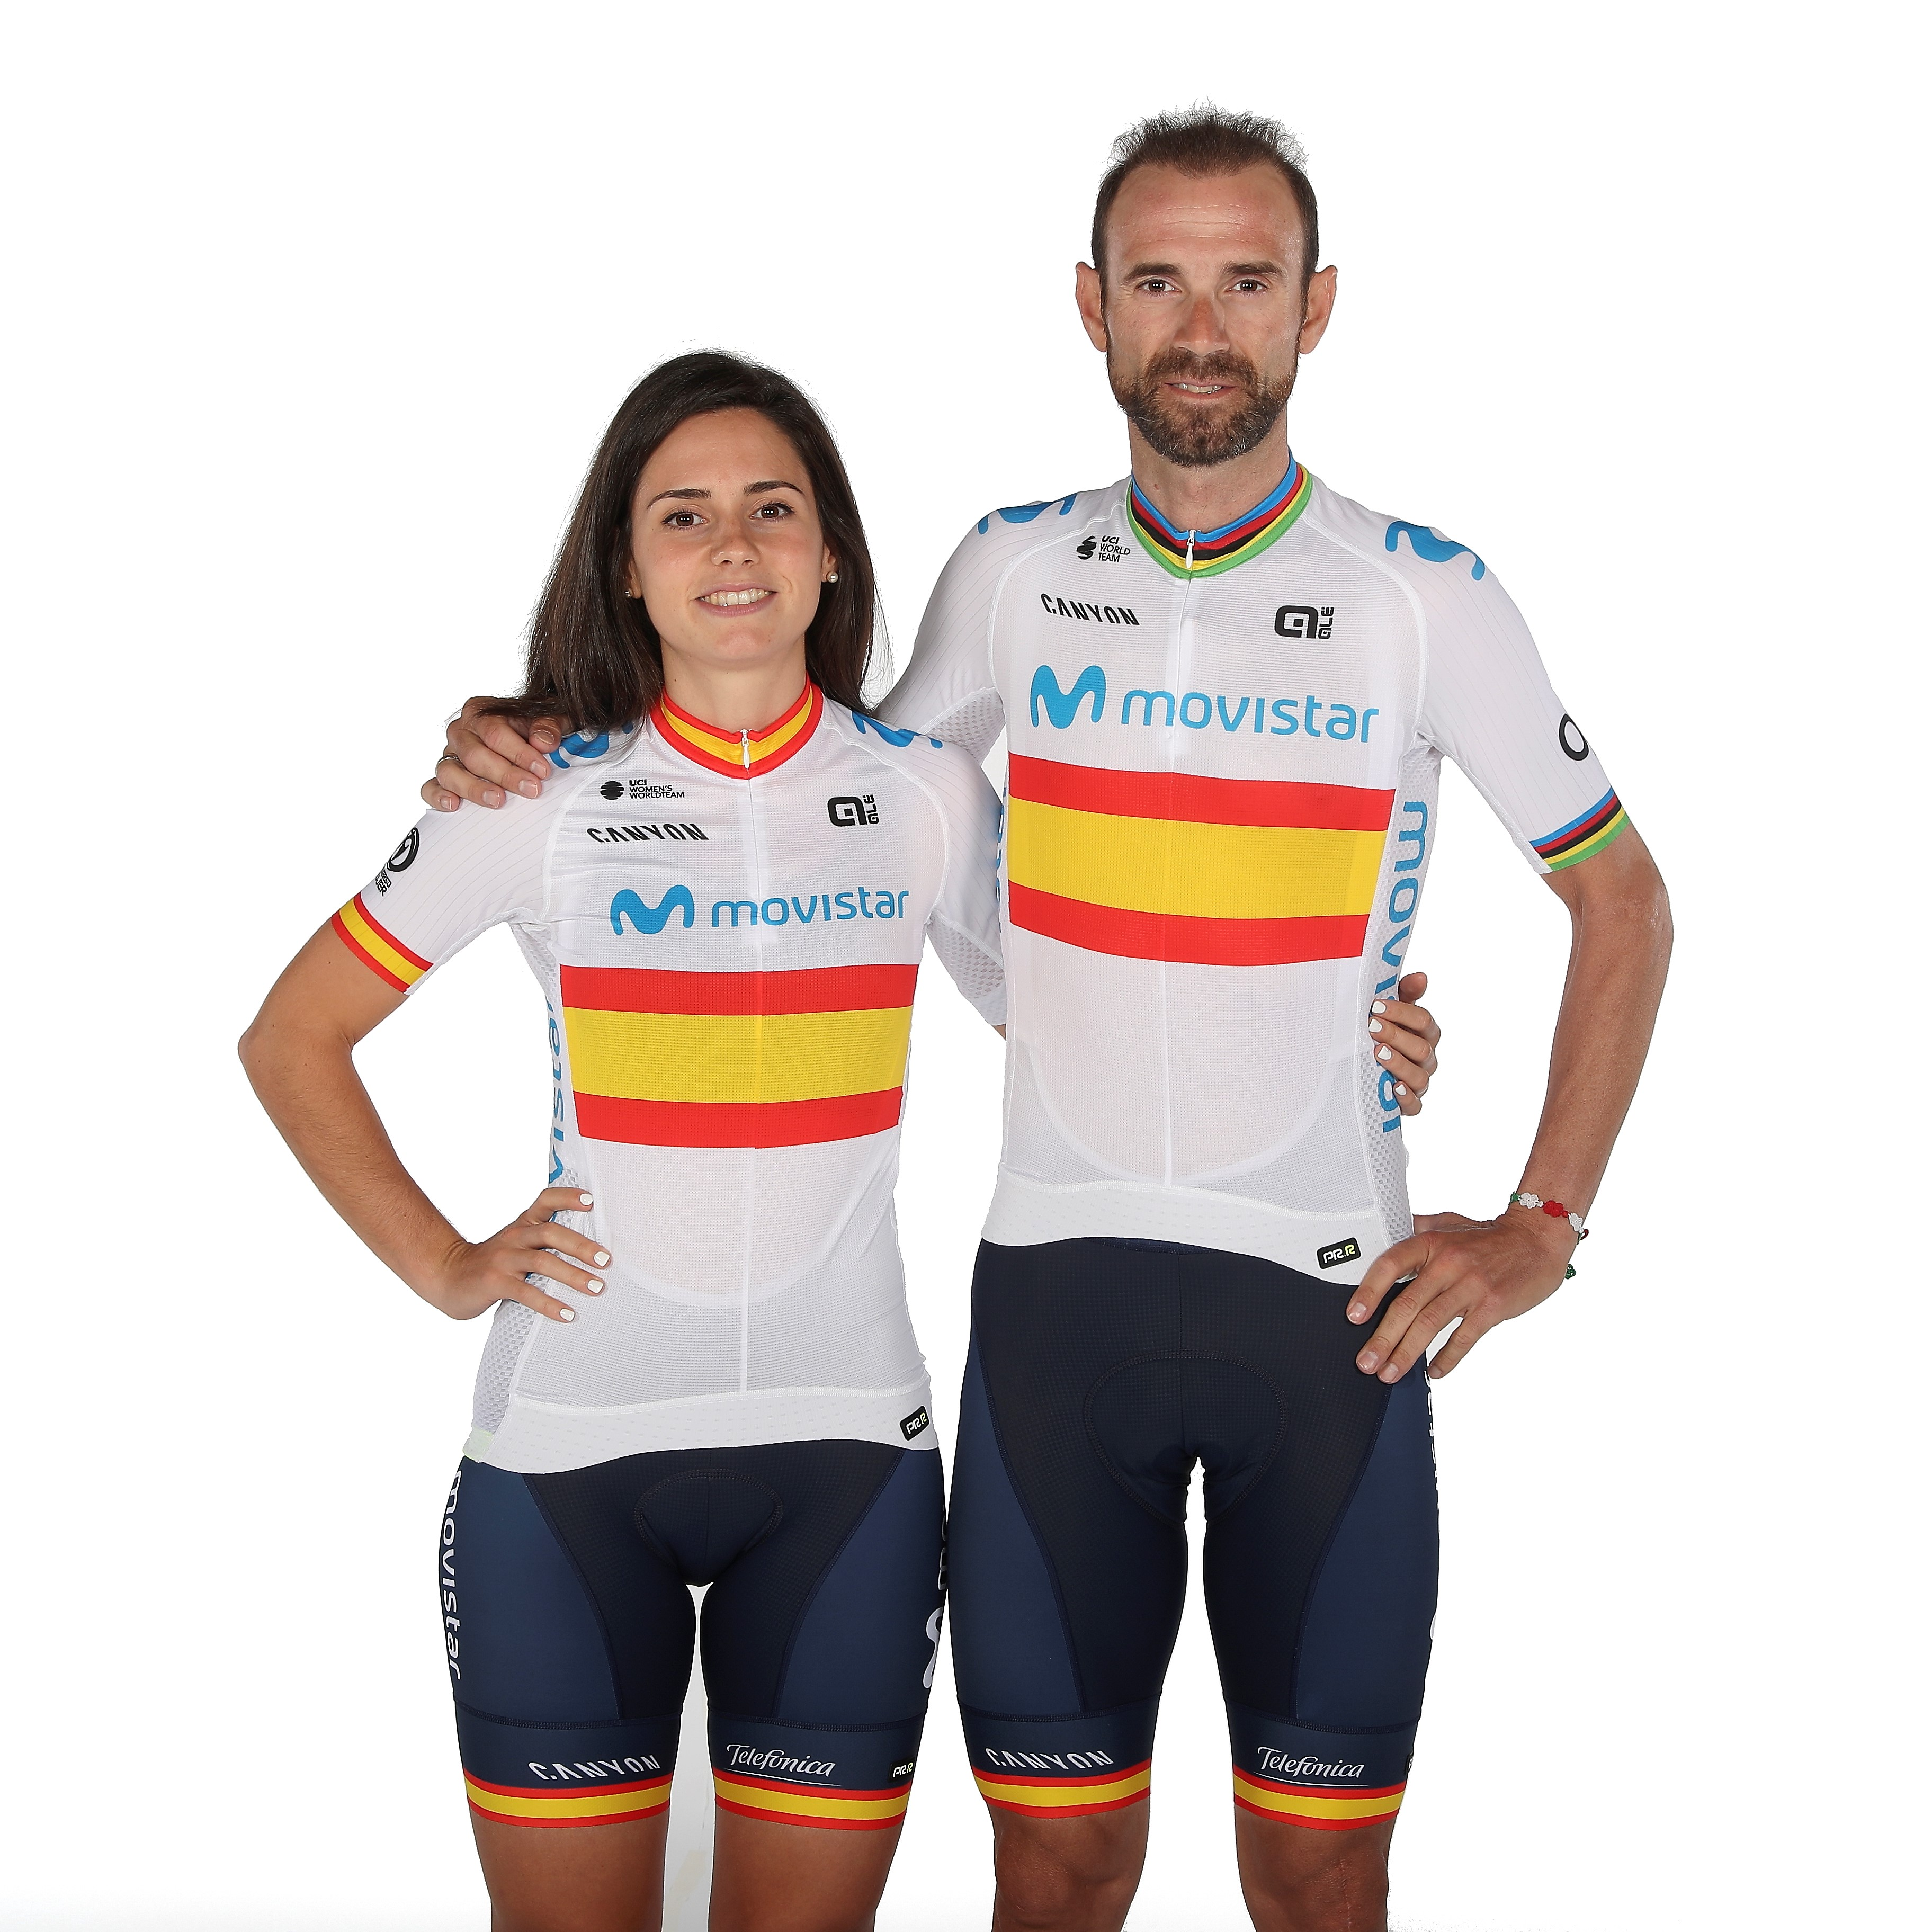 Maillots 2020 - Page 6 EL-zSr8W4AA4m5I?format=jpg&name=4096x4096